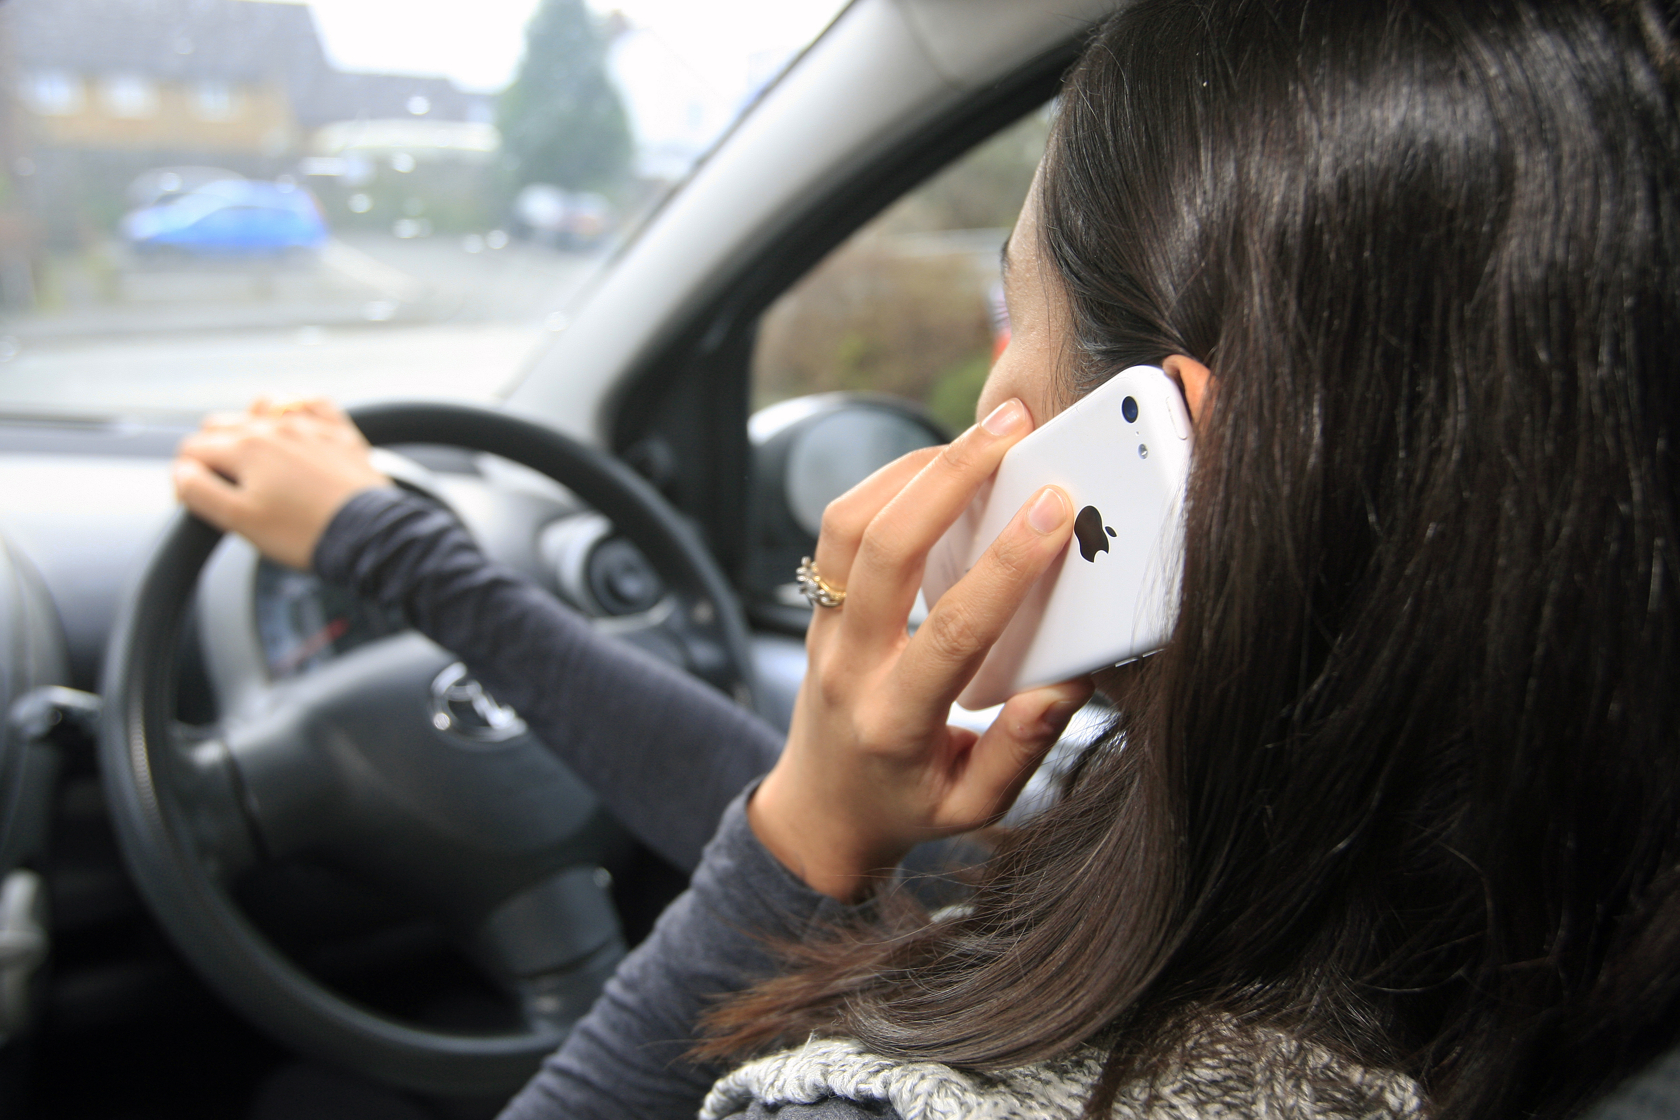 More than 150 drivers punished for using mobile phones since tougher penalties came into force